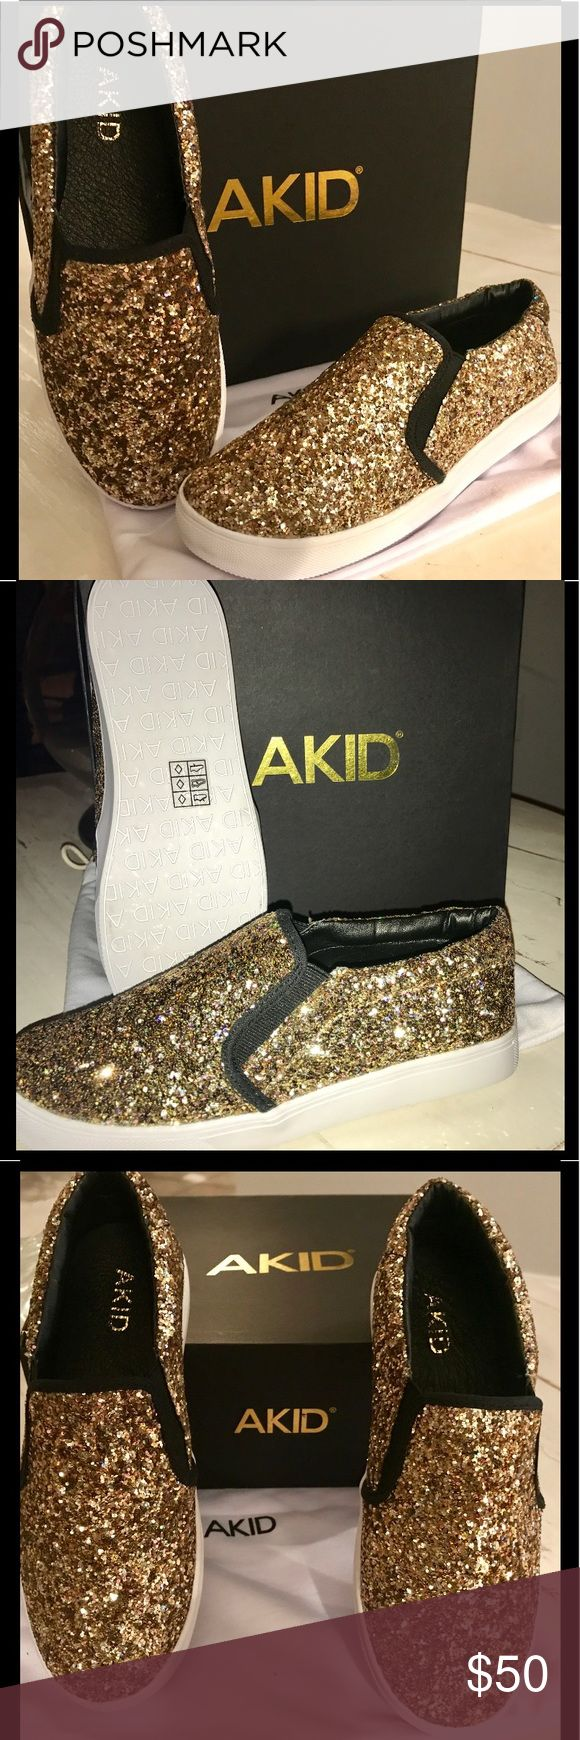 NWT ! AKID BRAND GOLD GLITTER SLIP ON TENNIS ! NWT. AKID TENNIS SHOE . In original box with dust bag.  Slip on tennis shoes !!! Perfect for a princess!!!!!  Blinged out!!!   Size 5 grade school !!!!! AKID Shoes Sneakers